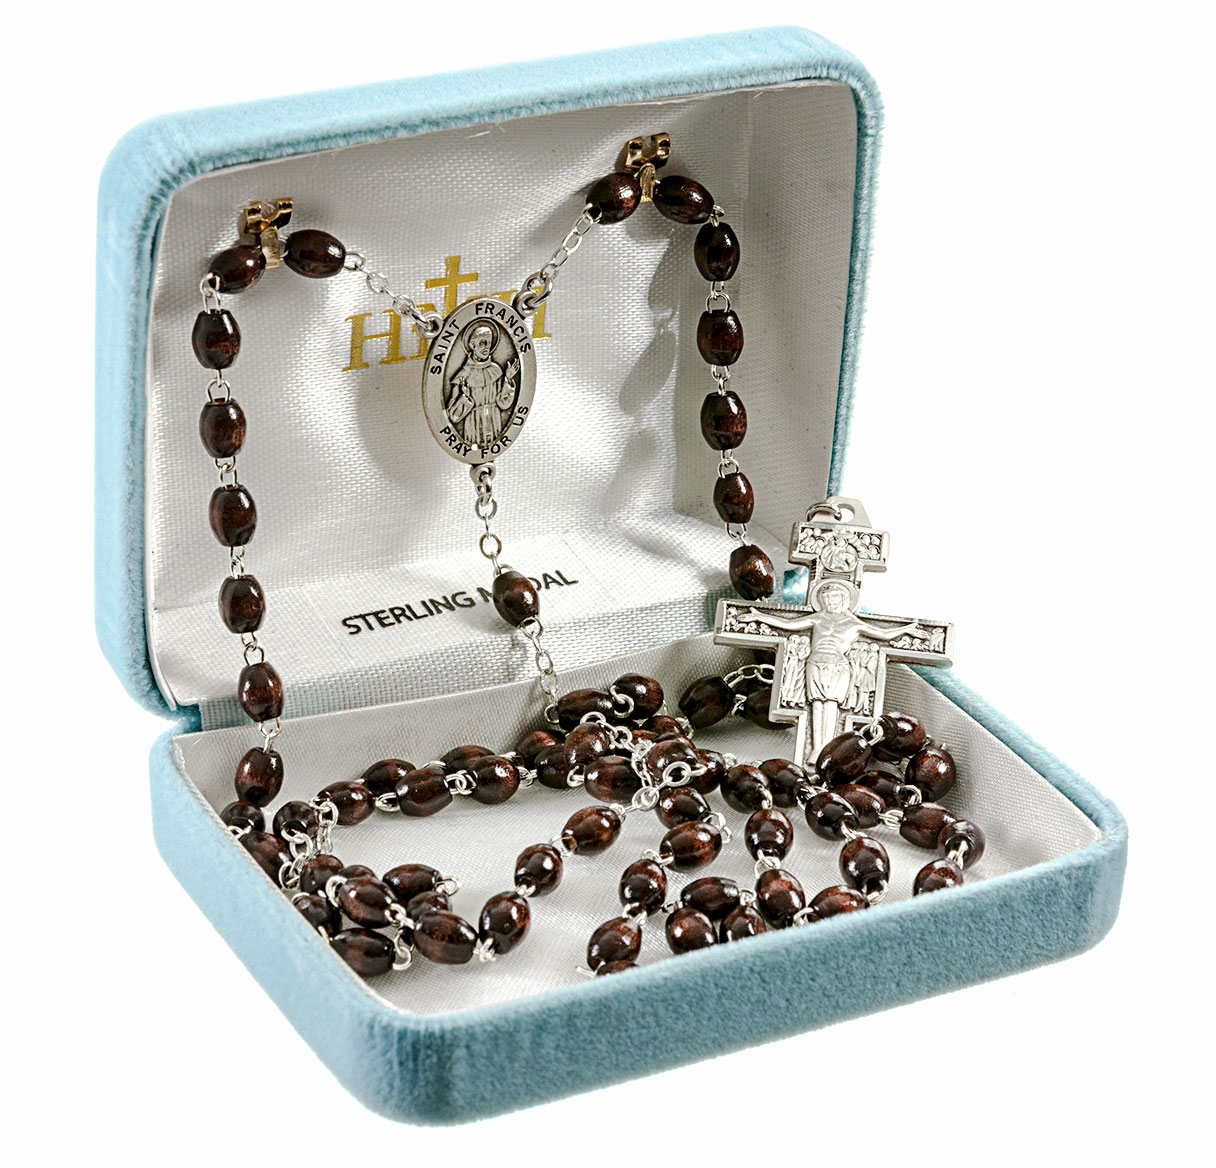 HMH Religious Franciscan Crown St Francis 7 Decade Rosary